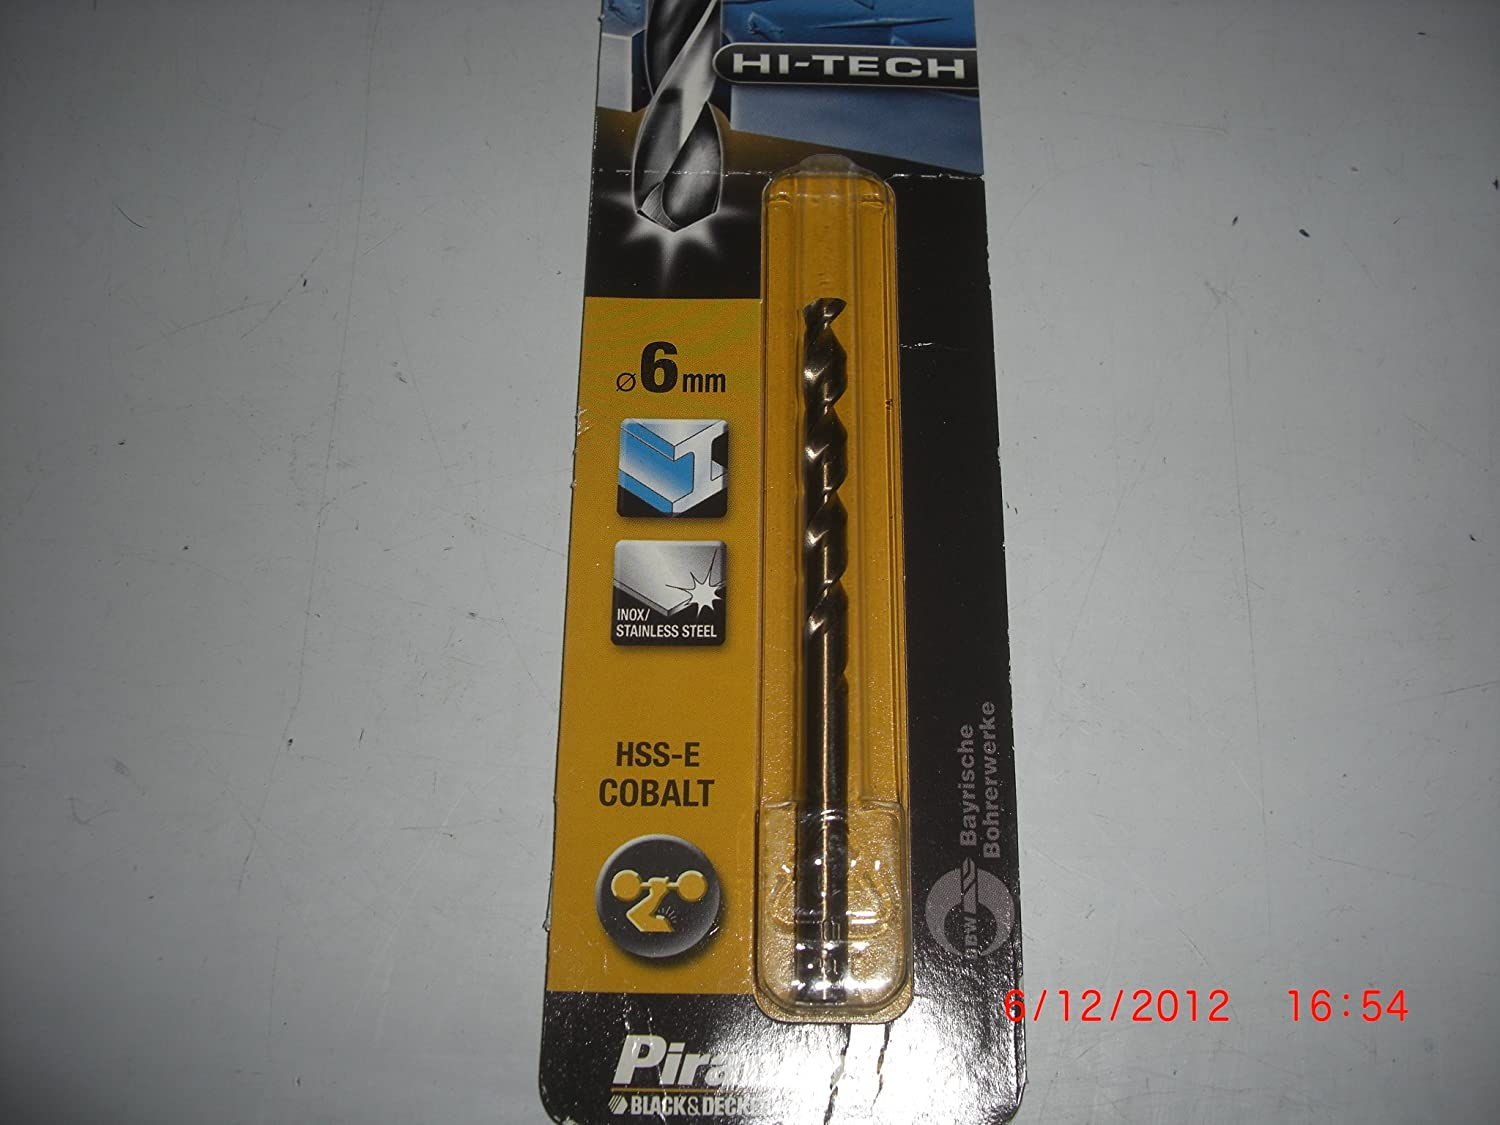 Piranha Hi-Tech 1/ Piece 3/ mm X50082/ QZ Metal Drill Bit HSS-E Cobalt